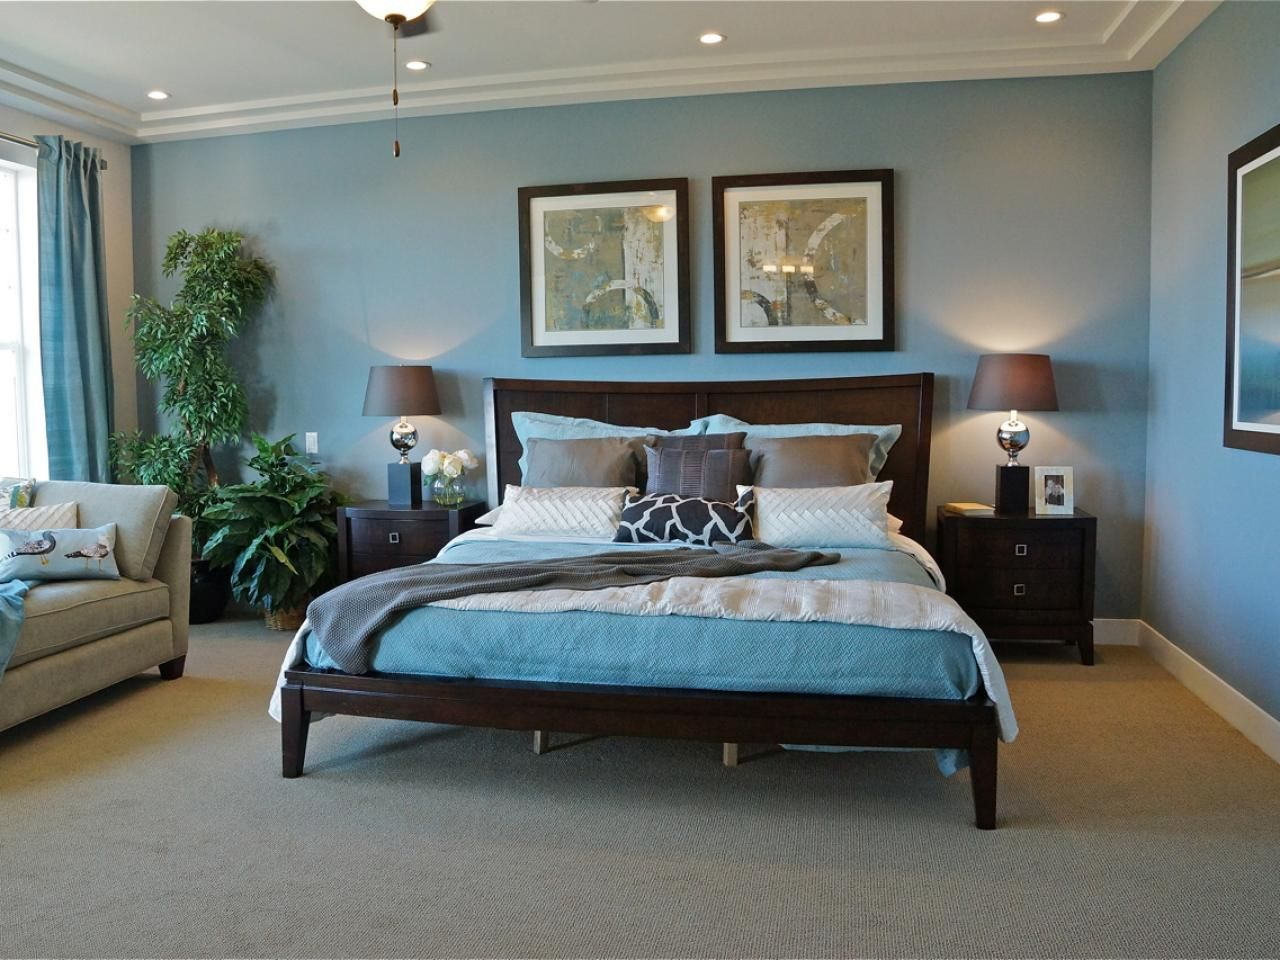 Soothing And Stately This Traditional Bedroom Pairs Dark Wood Furniture With Soft Blue Walls